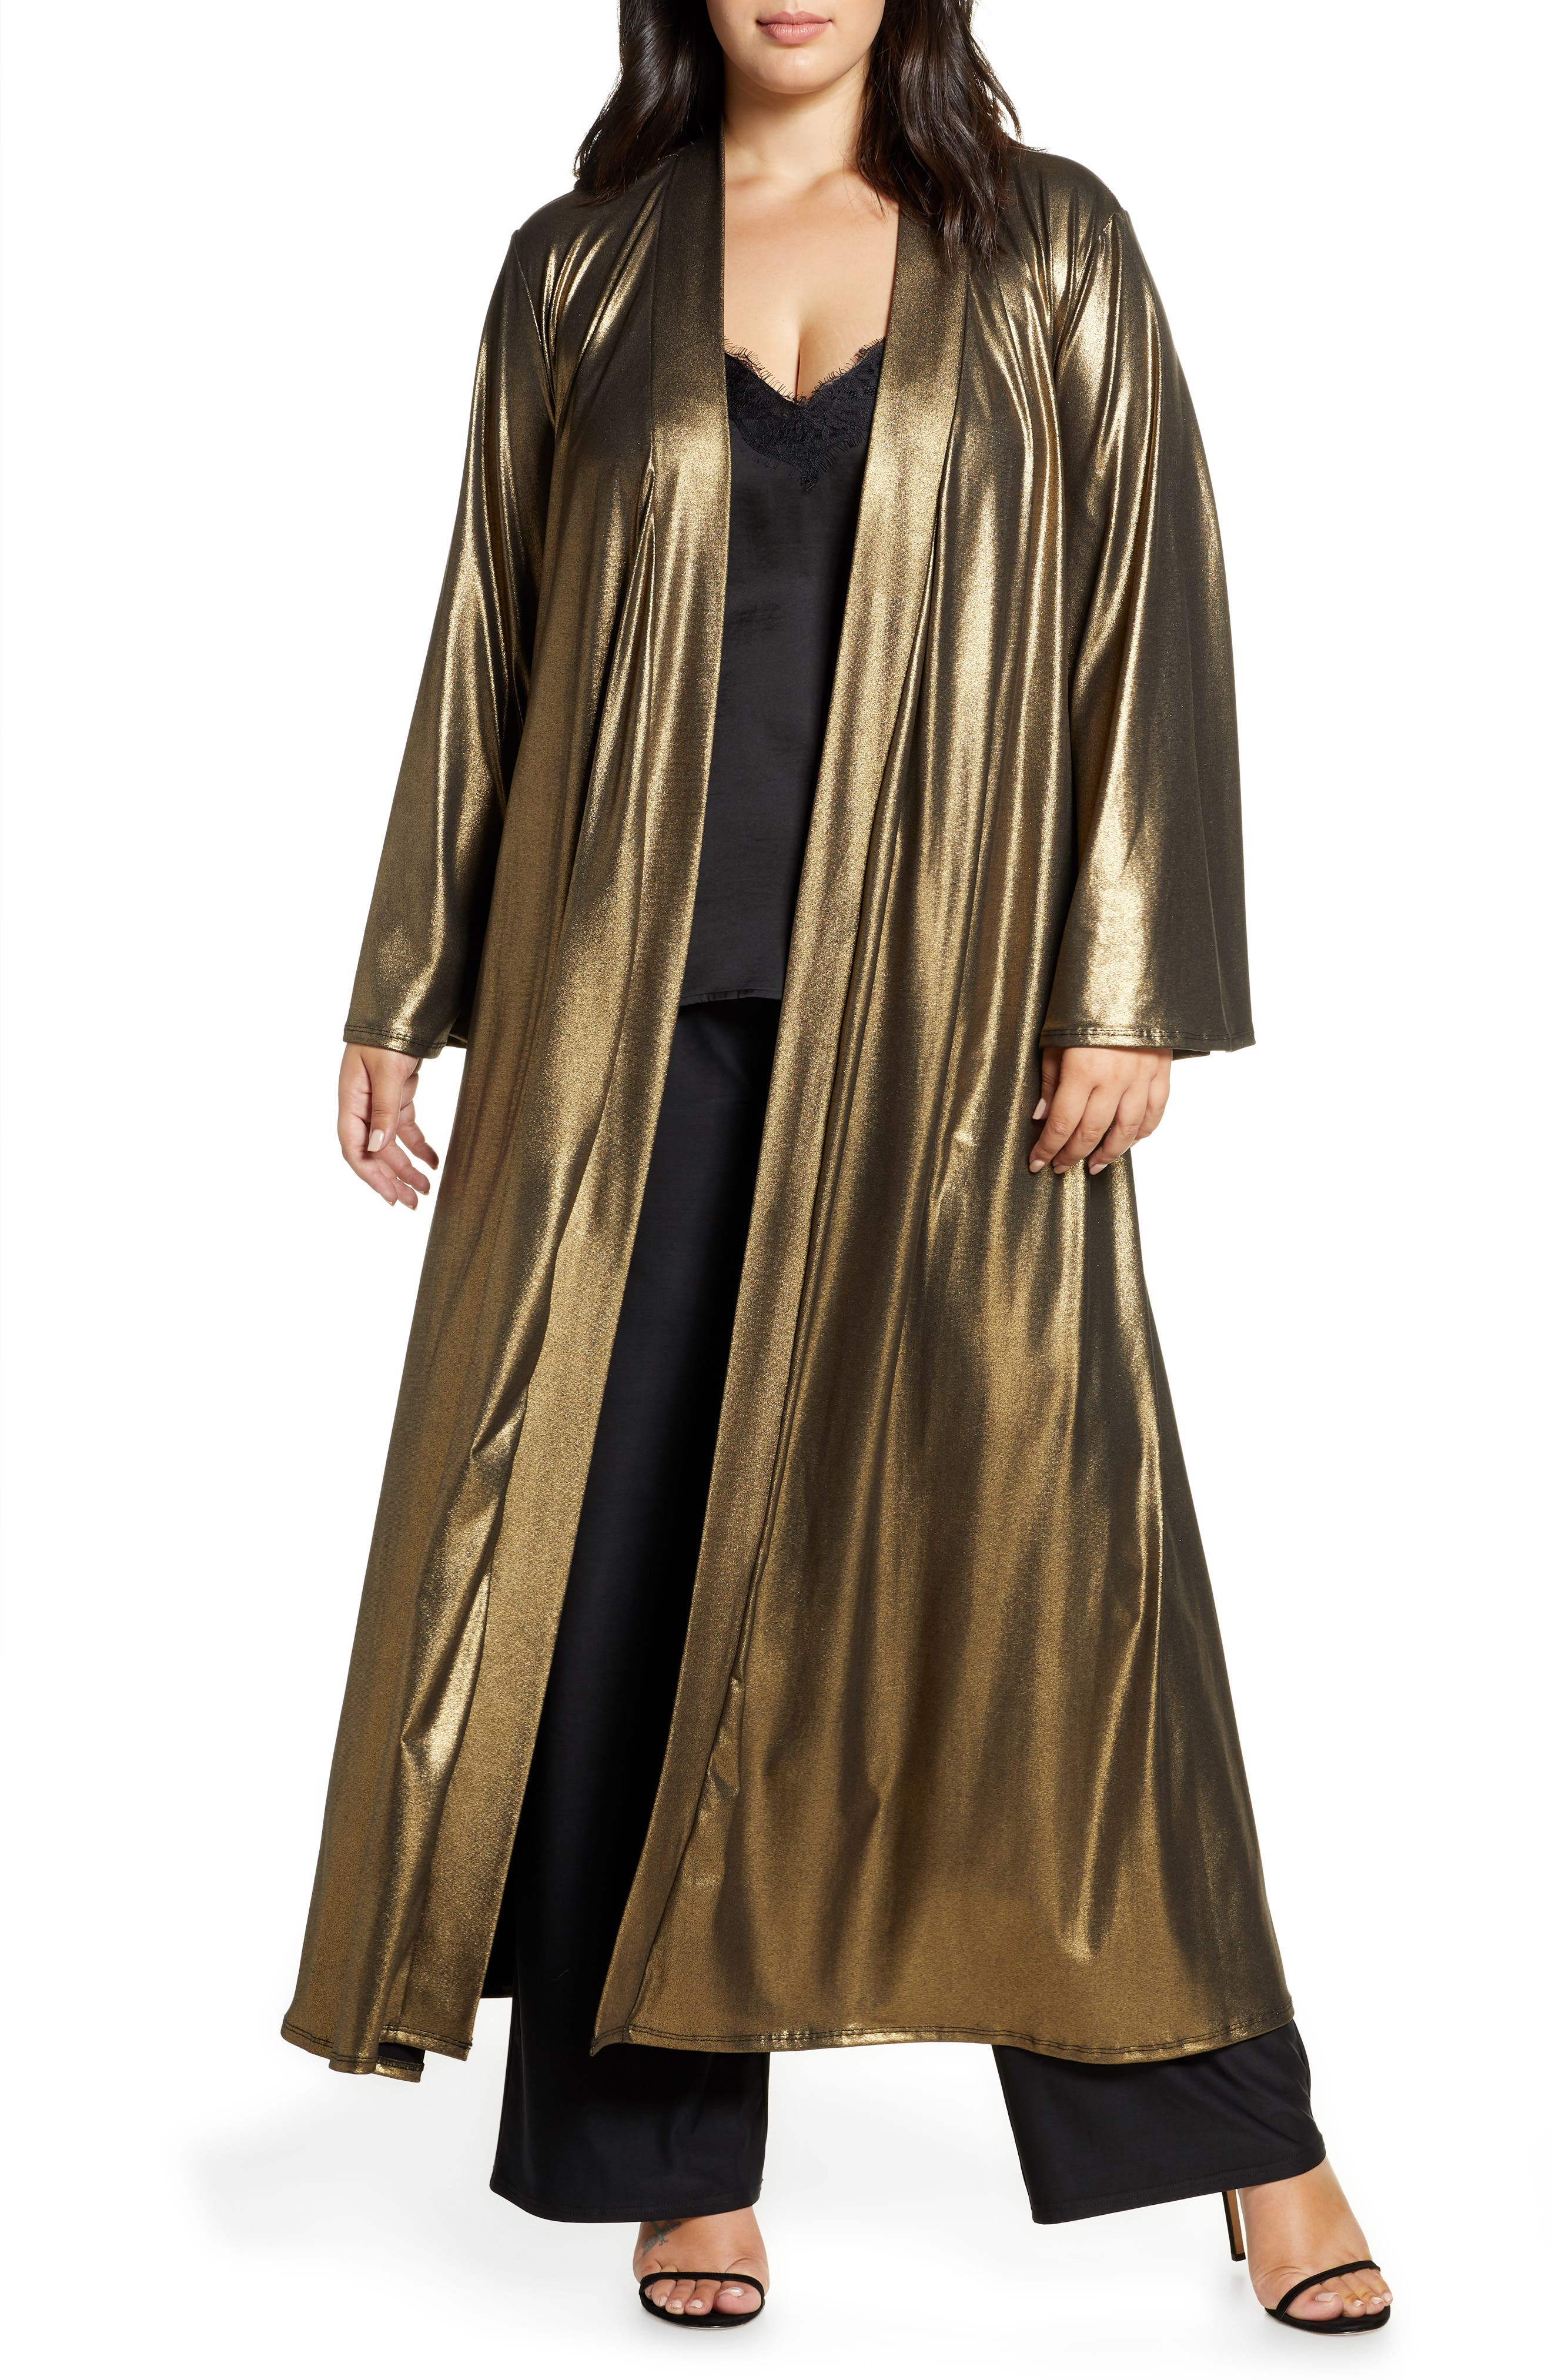 Vintage Coats & Jackets   Retro Coats and Jackets Plus Size Womens Coldesina Dylan Metallic Duster $98.00 AT vintagedancer.com